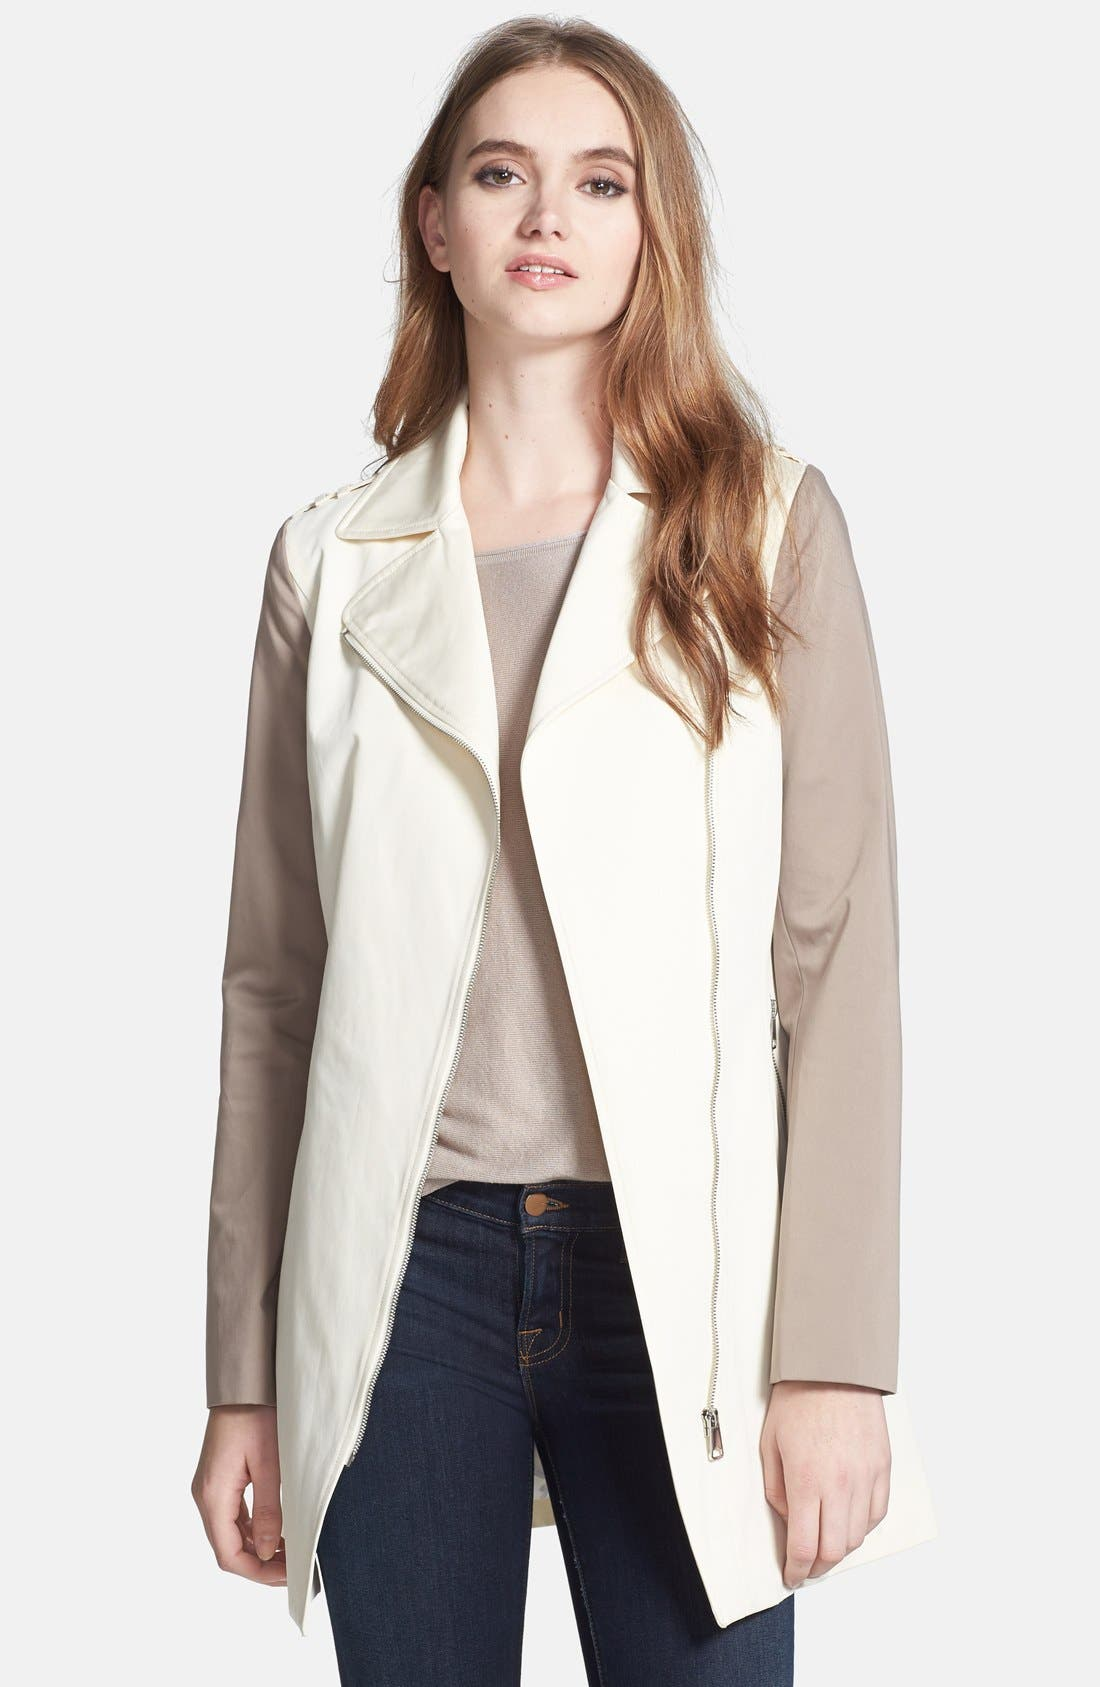 Alternate Image 1 Selected - Soia & Kyo Asymmetrical Two-Tone Trench Coat